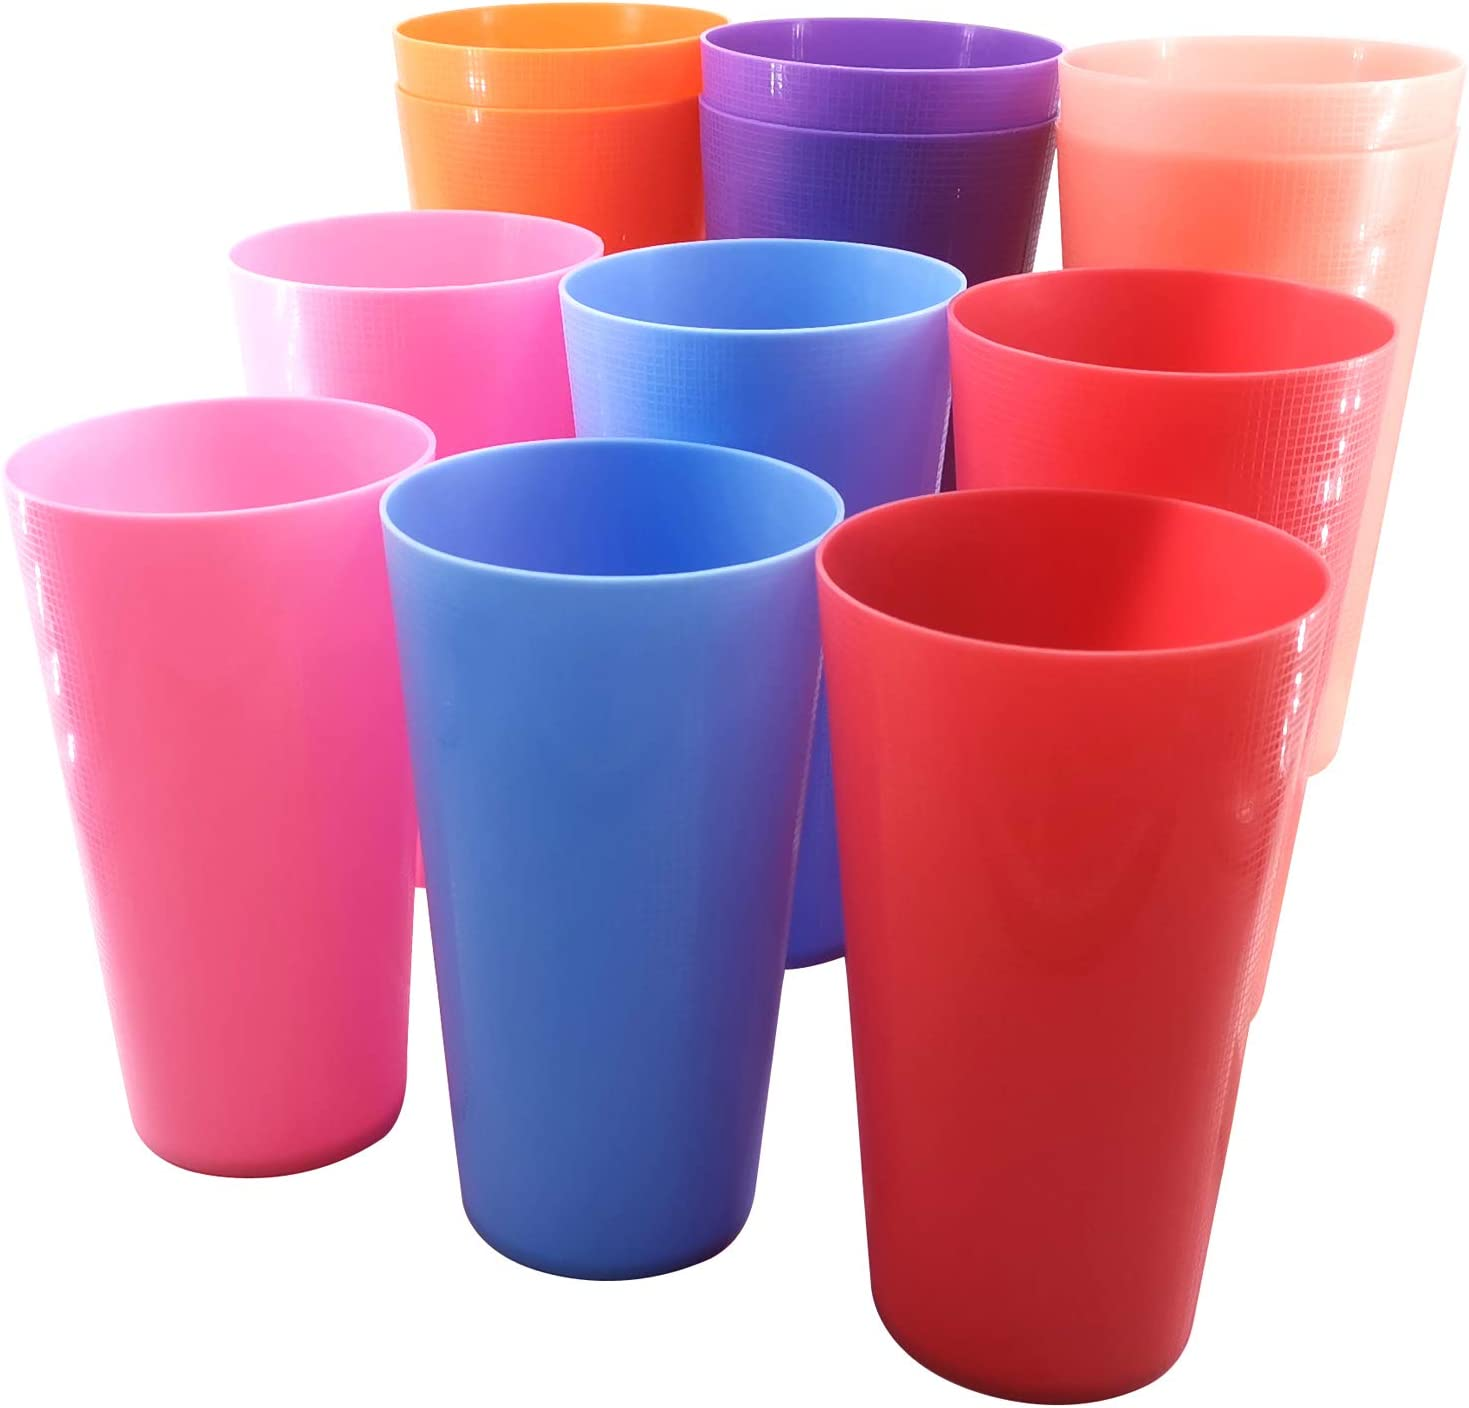 32-Ounce Plastic Tumblers Large Drinking Glasses Set of 12, 6 Assorted Colors|Unbreakable, BPA Free